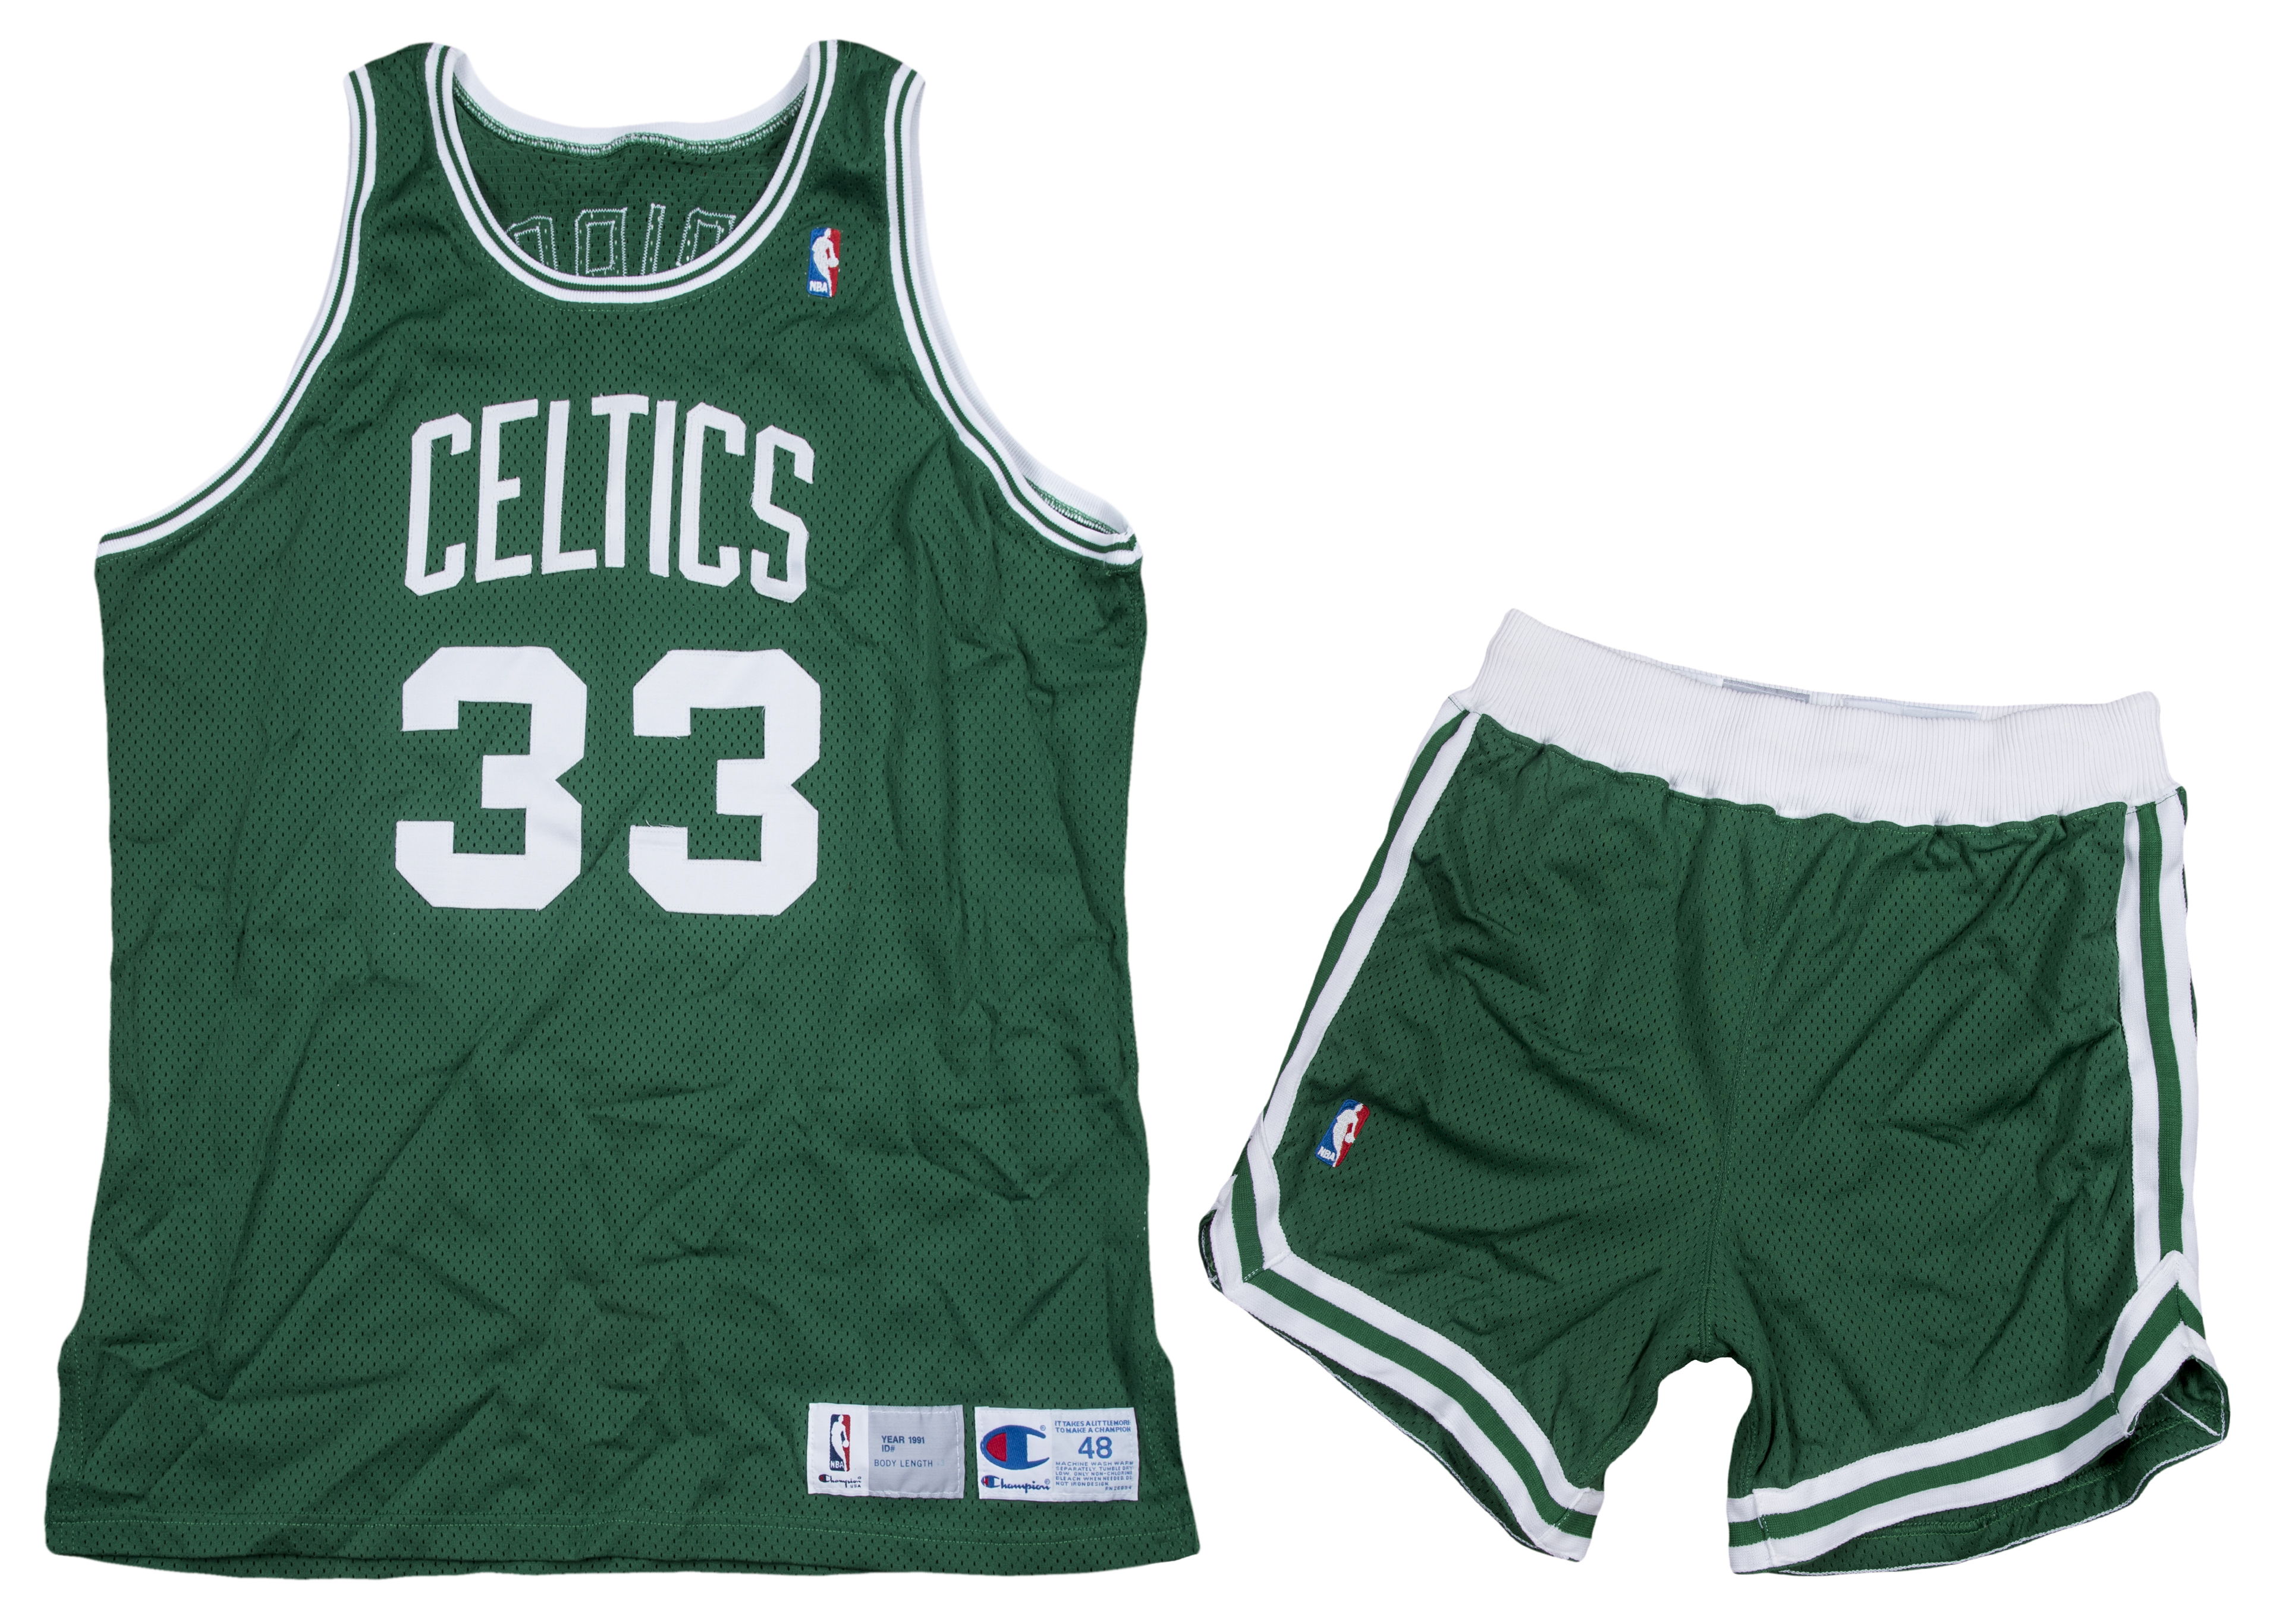 a0ec36260326 1991-92 Larry Bird Game Used and Signed Boston Celtics Final Season Jersey    Shorts (Beckett)